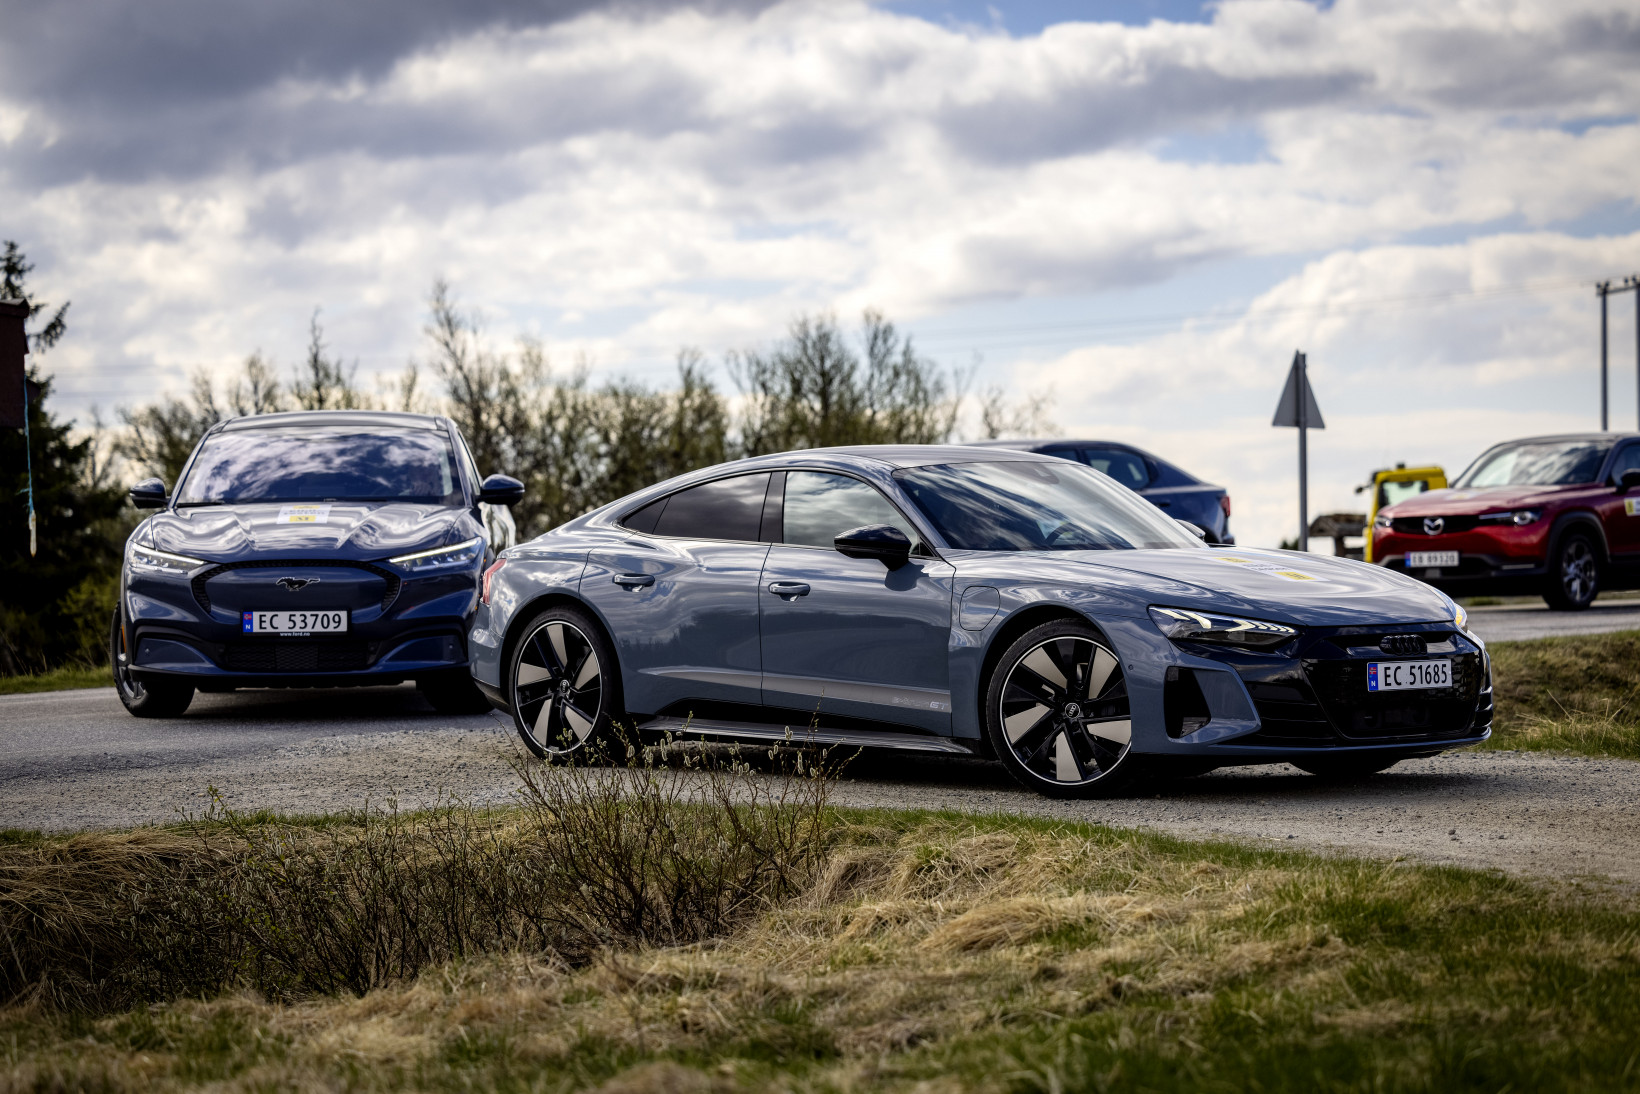 Audi e-Tron GT is a great EV in looks and range